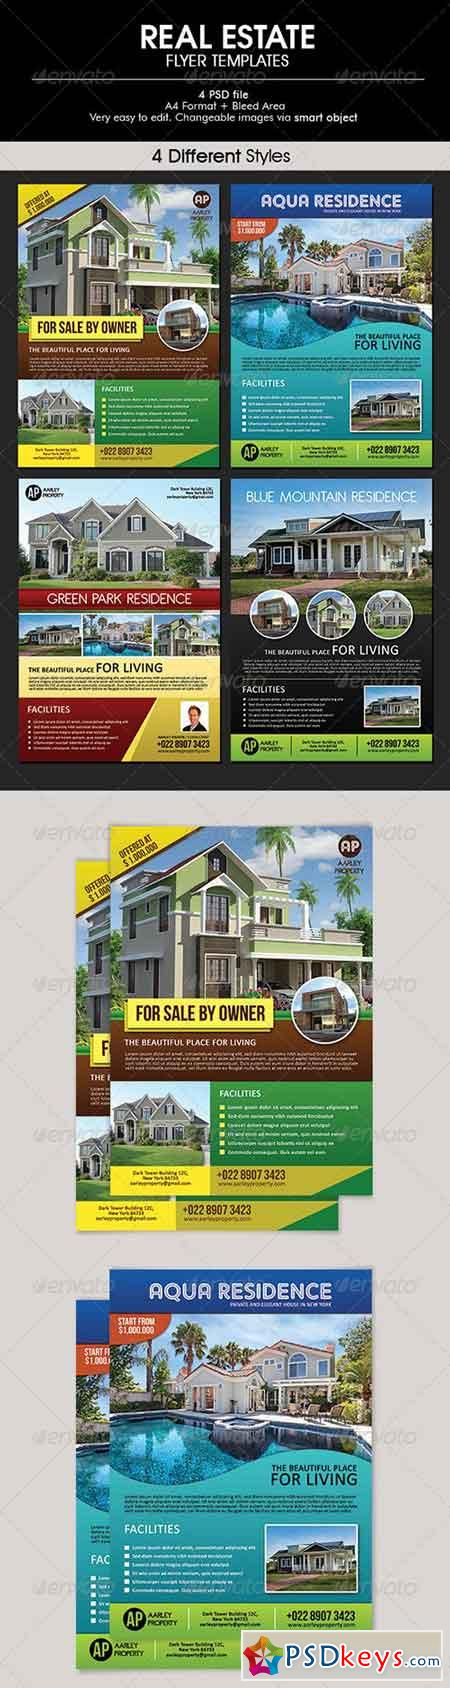 Real Estate Flyer 6395908